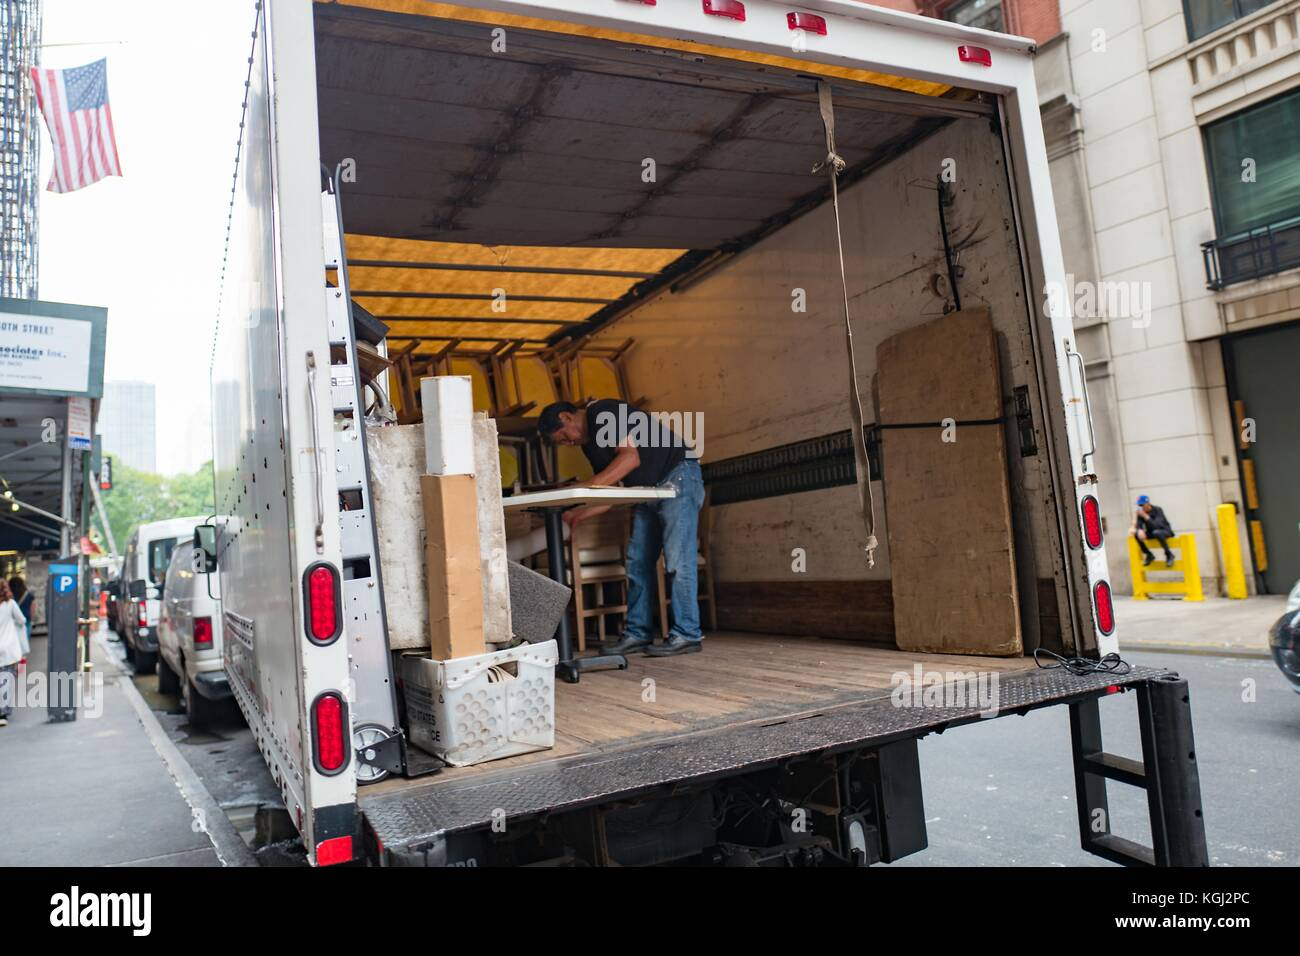 On a busy street in Manhattan, New York City, New York, a man assembles a table in the back of a delivery truck - Stock Image